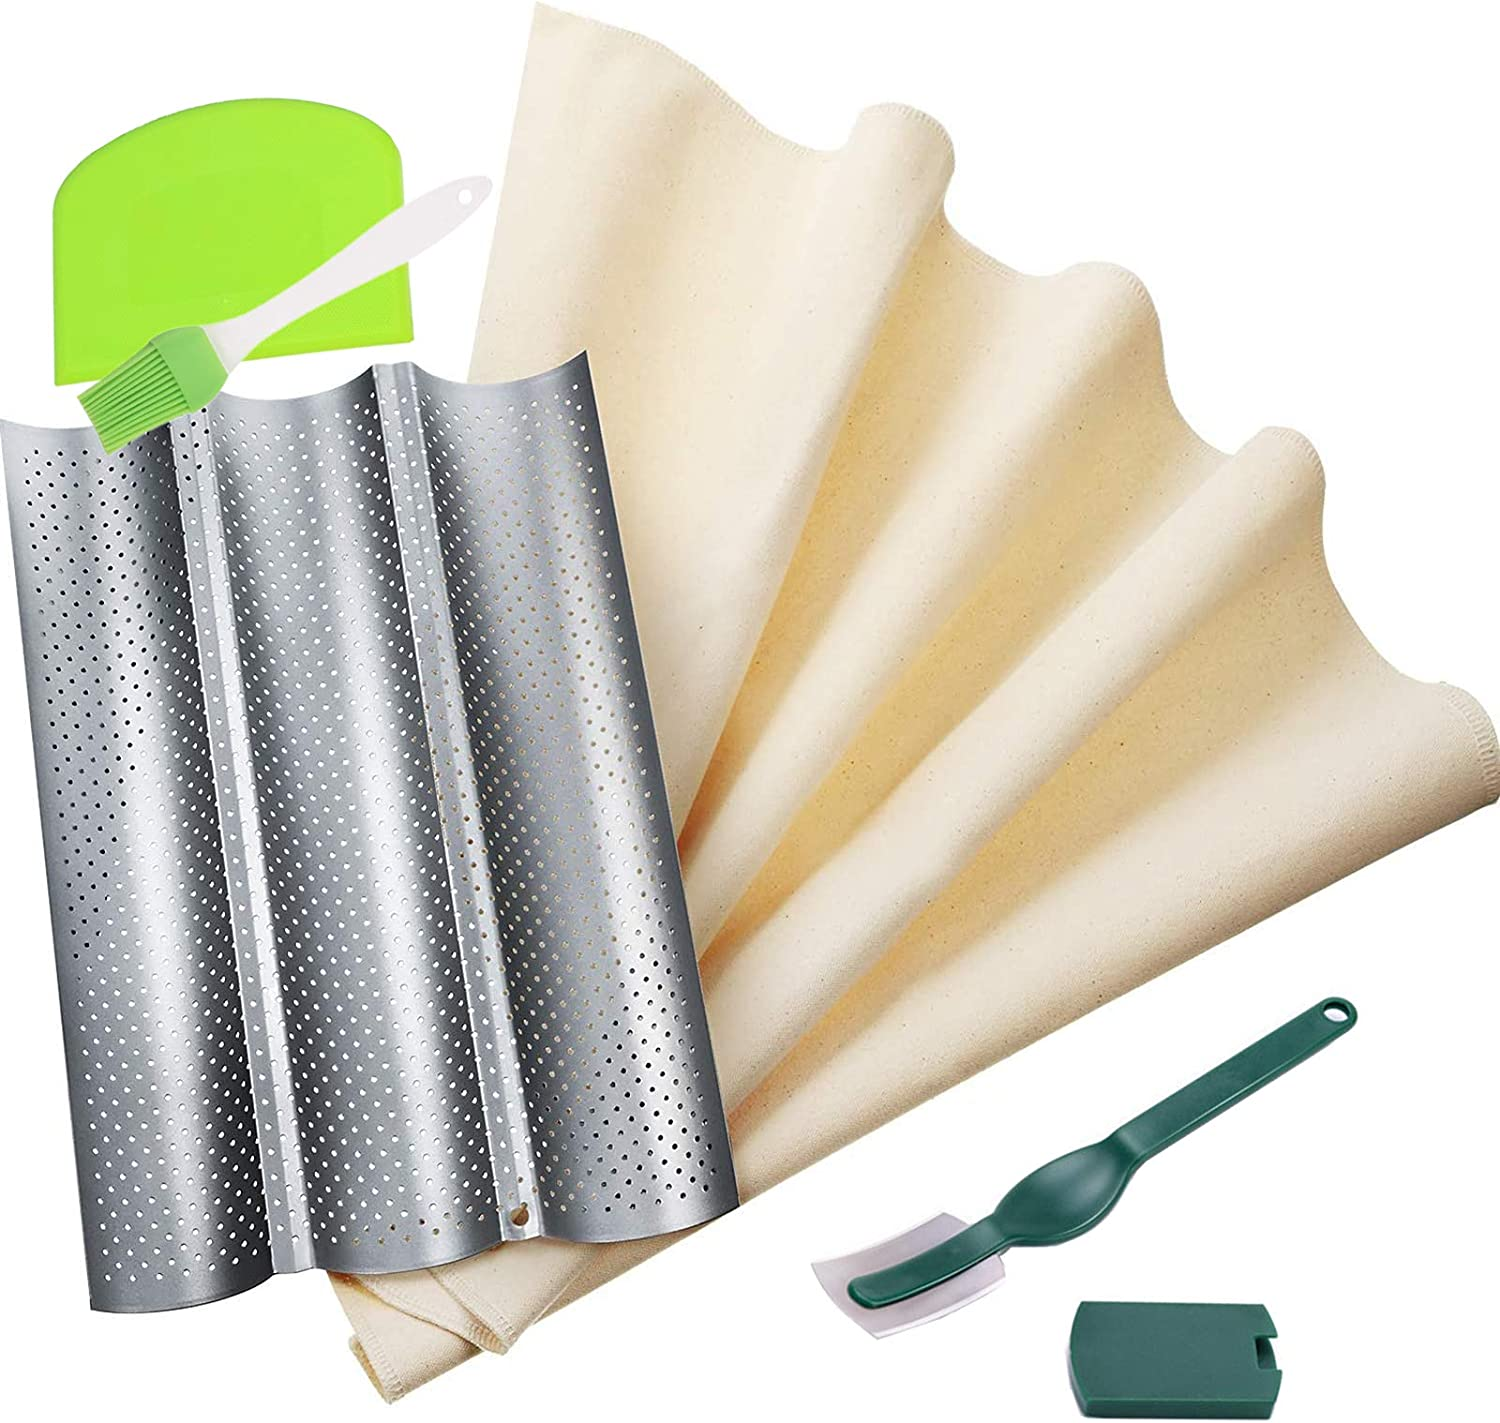 French Bread Baguette Pans Selling and selling Bagu Perforated Baking,Nonstick for Phoenix Mall